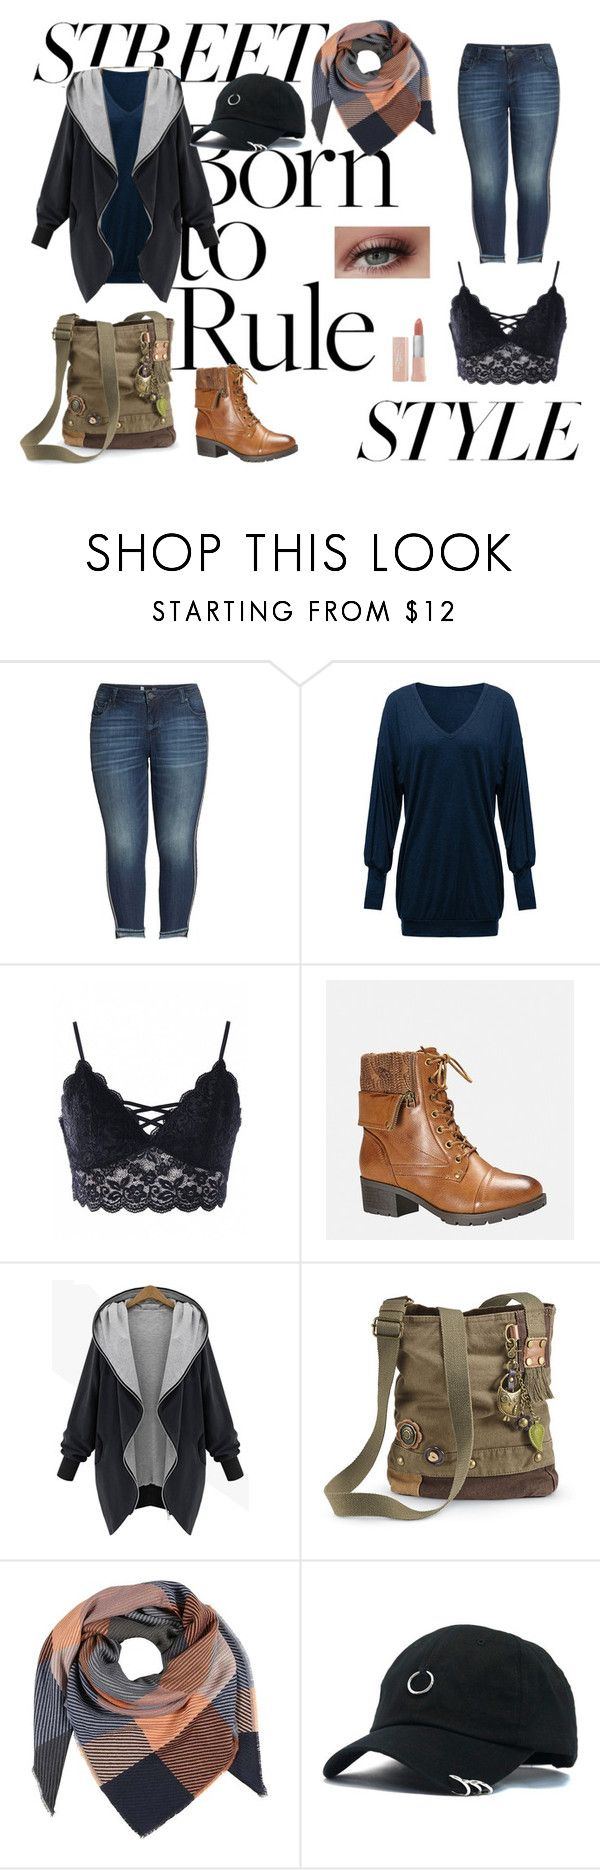 """""""Komb 11#"""" by aldijana-jamakovic ❤ liked on Polyvore featuring KUT from the Kloth, Avenue, Maybelline, contestentry and nyfwstreetstyle"""